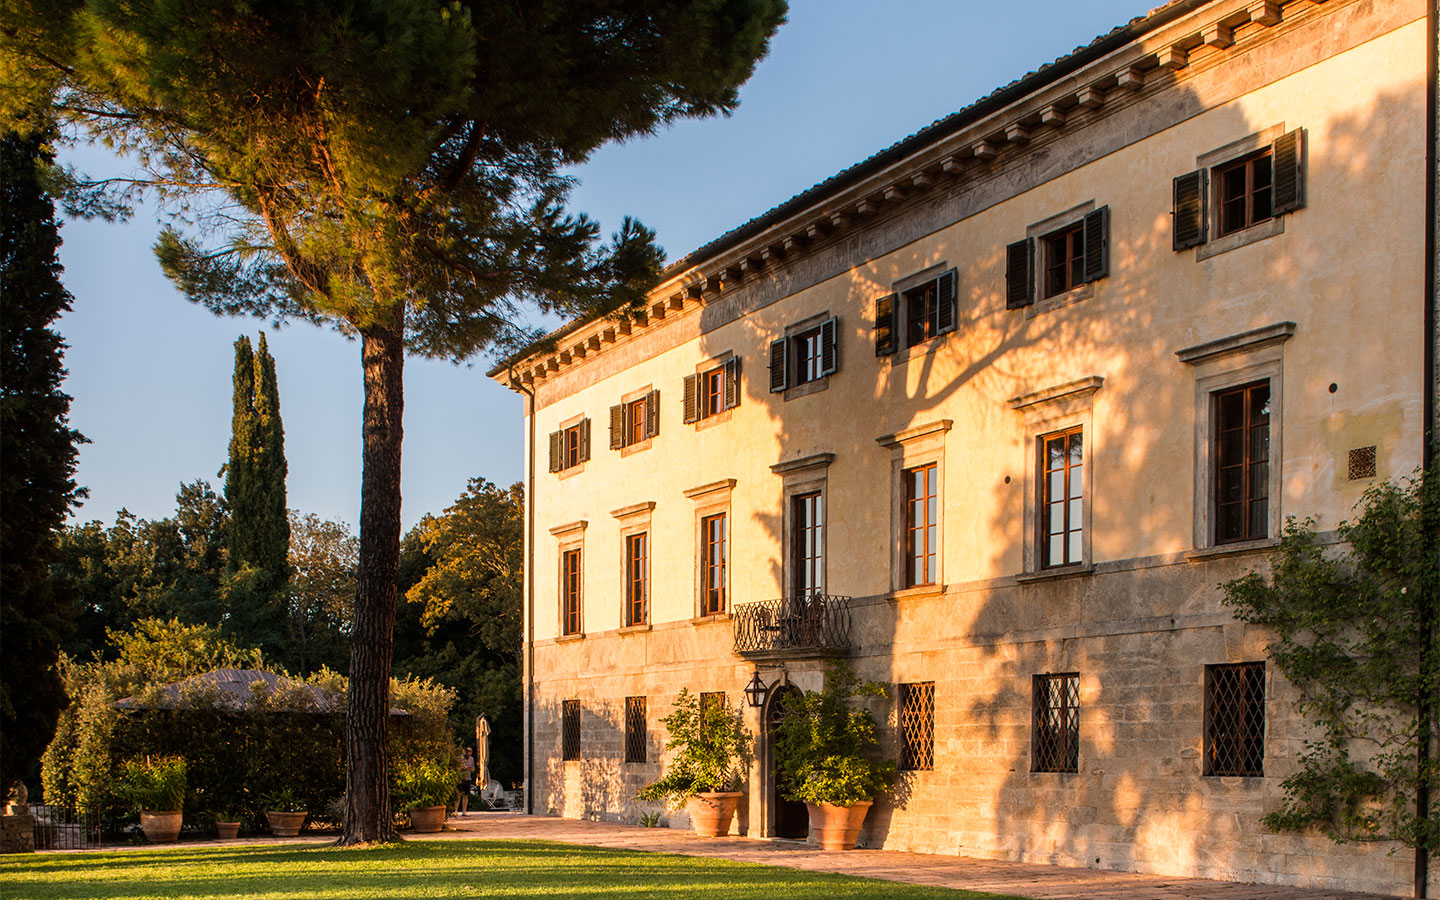 T11-Wedding-Venue-Tuscany-Wedding-Planner